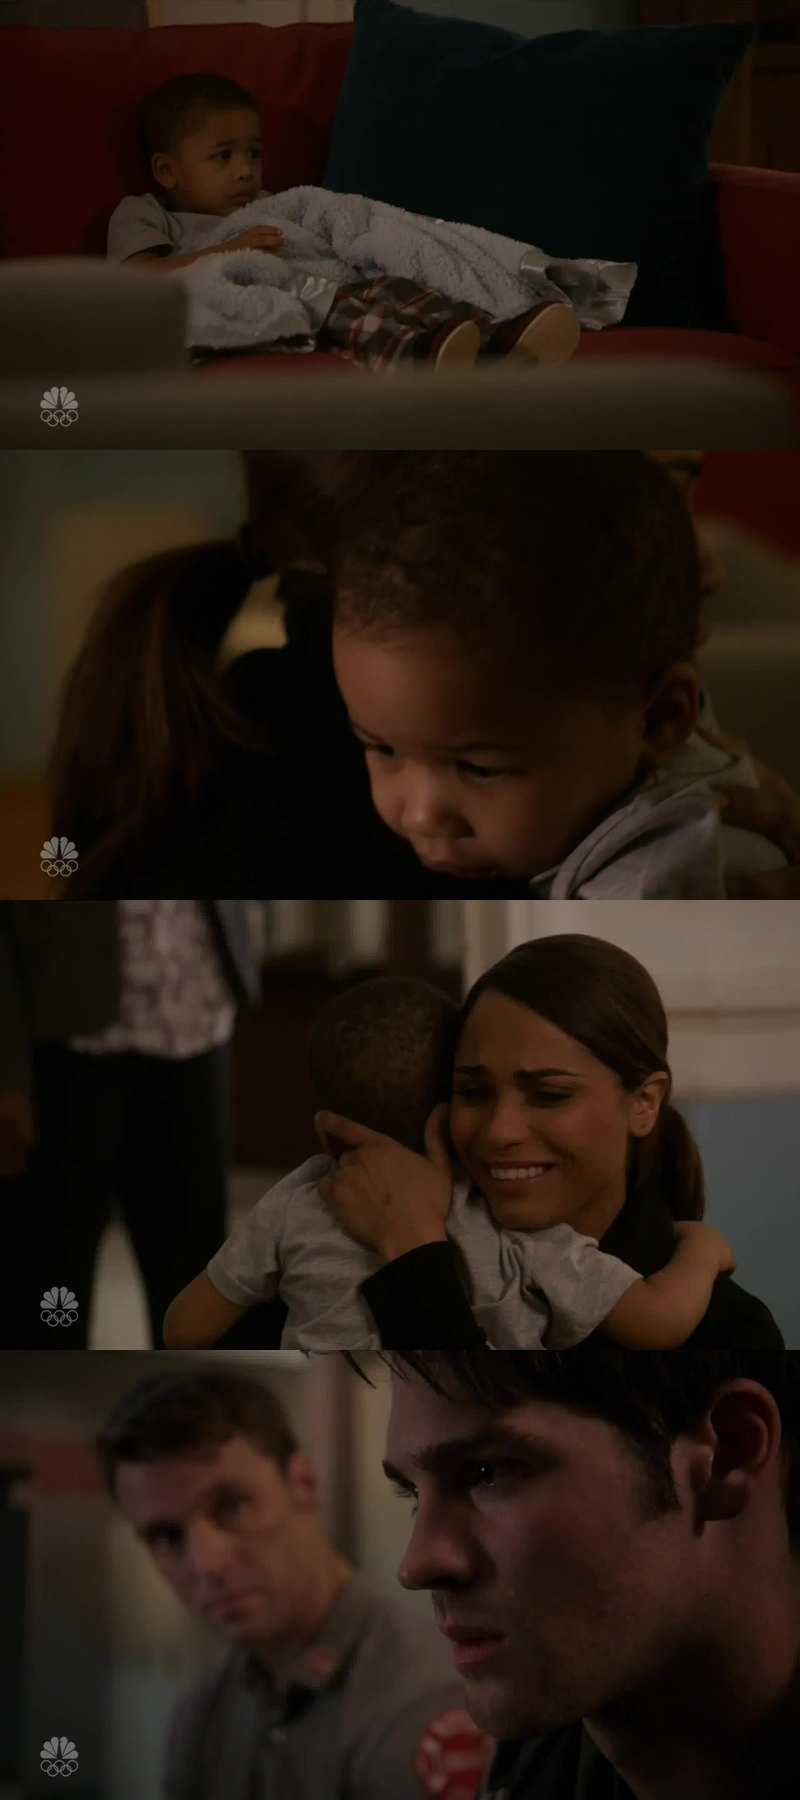 That was such a lovely mommy hug!! Simply B E A U T I F U L!!  #Dawson&Louie  Poor Jimmy...😰 so brutally sad😔